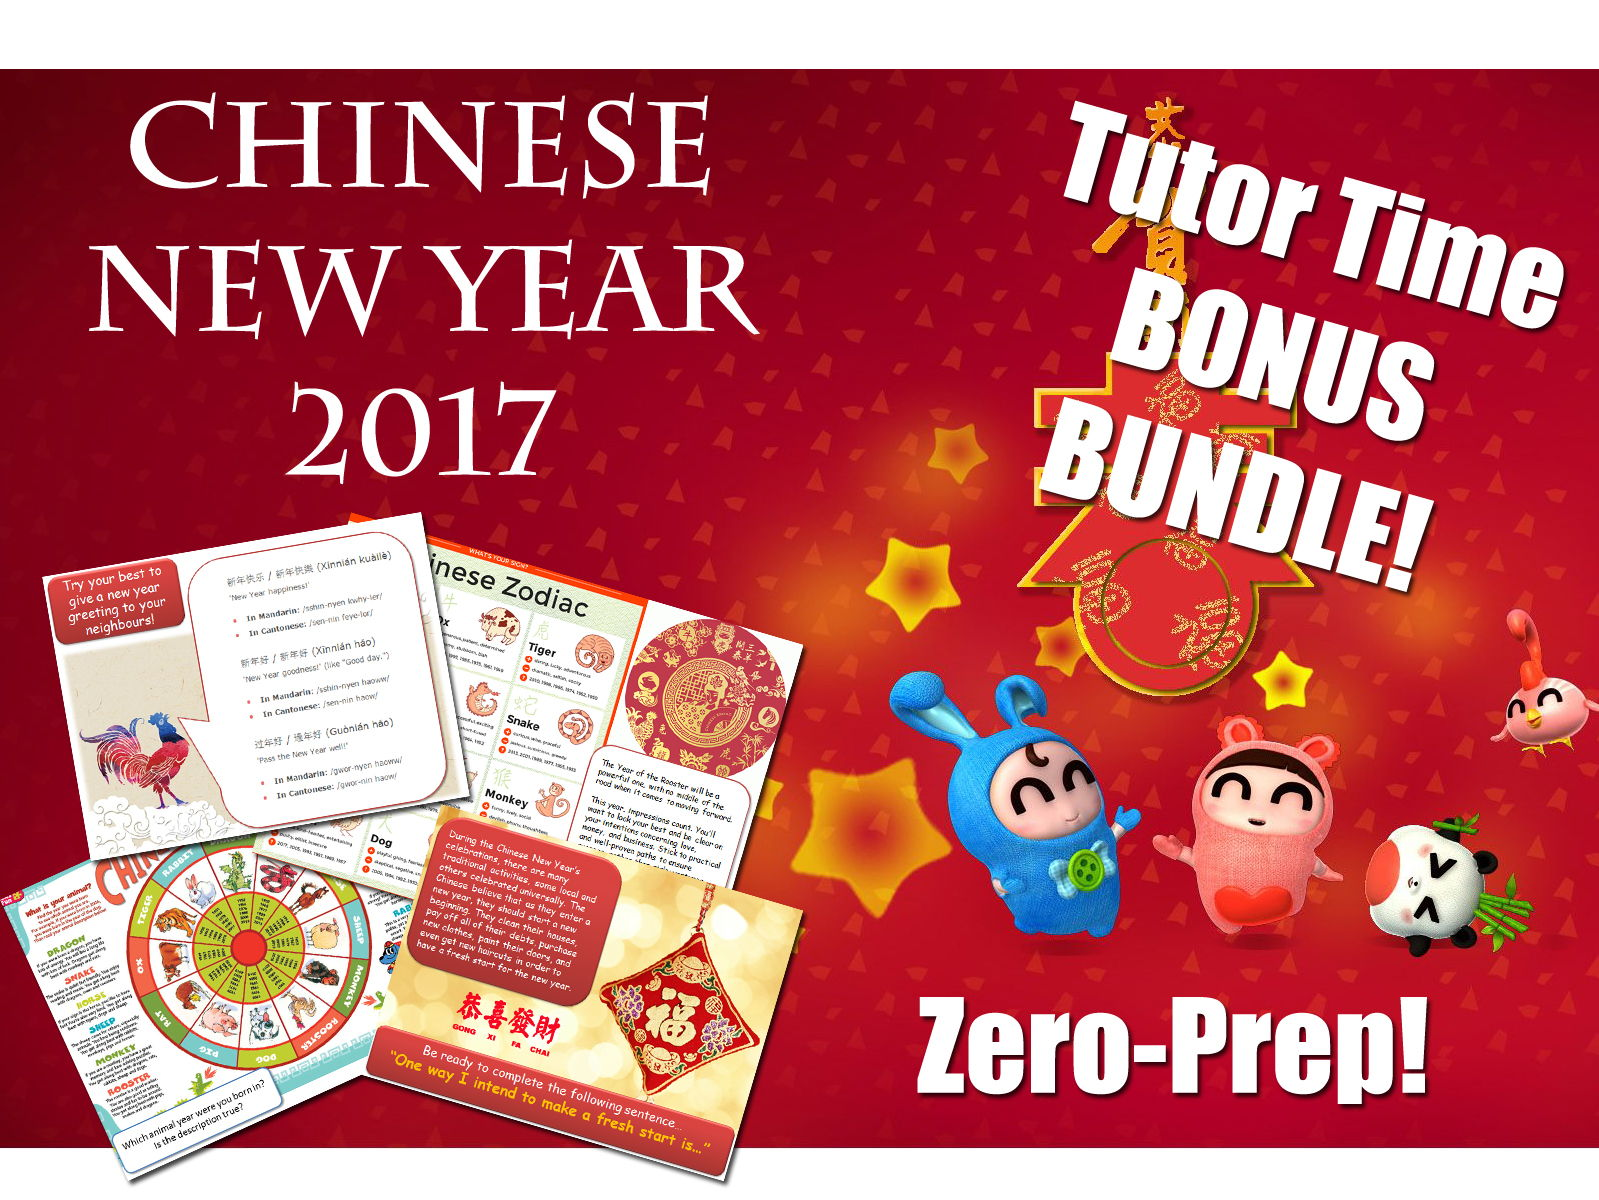 Chinese New Year 2017 - SPECIAL TUTOR RESOURCE PACK5